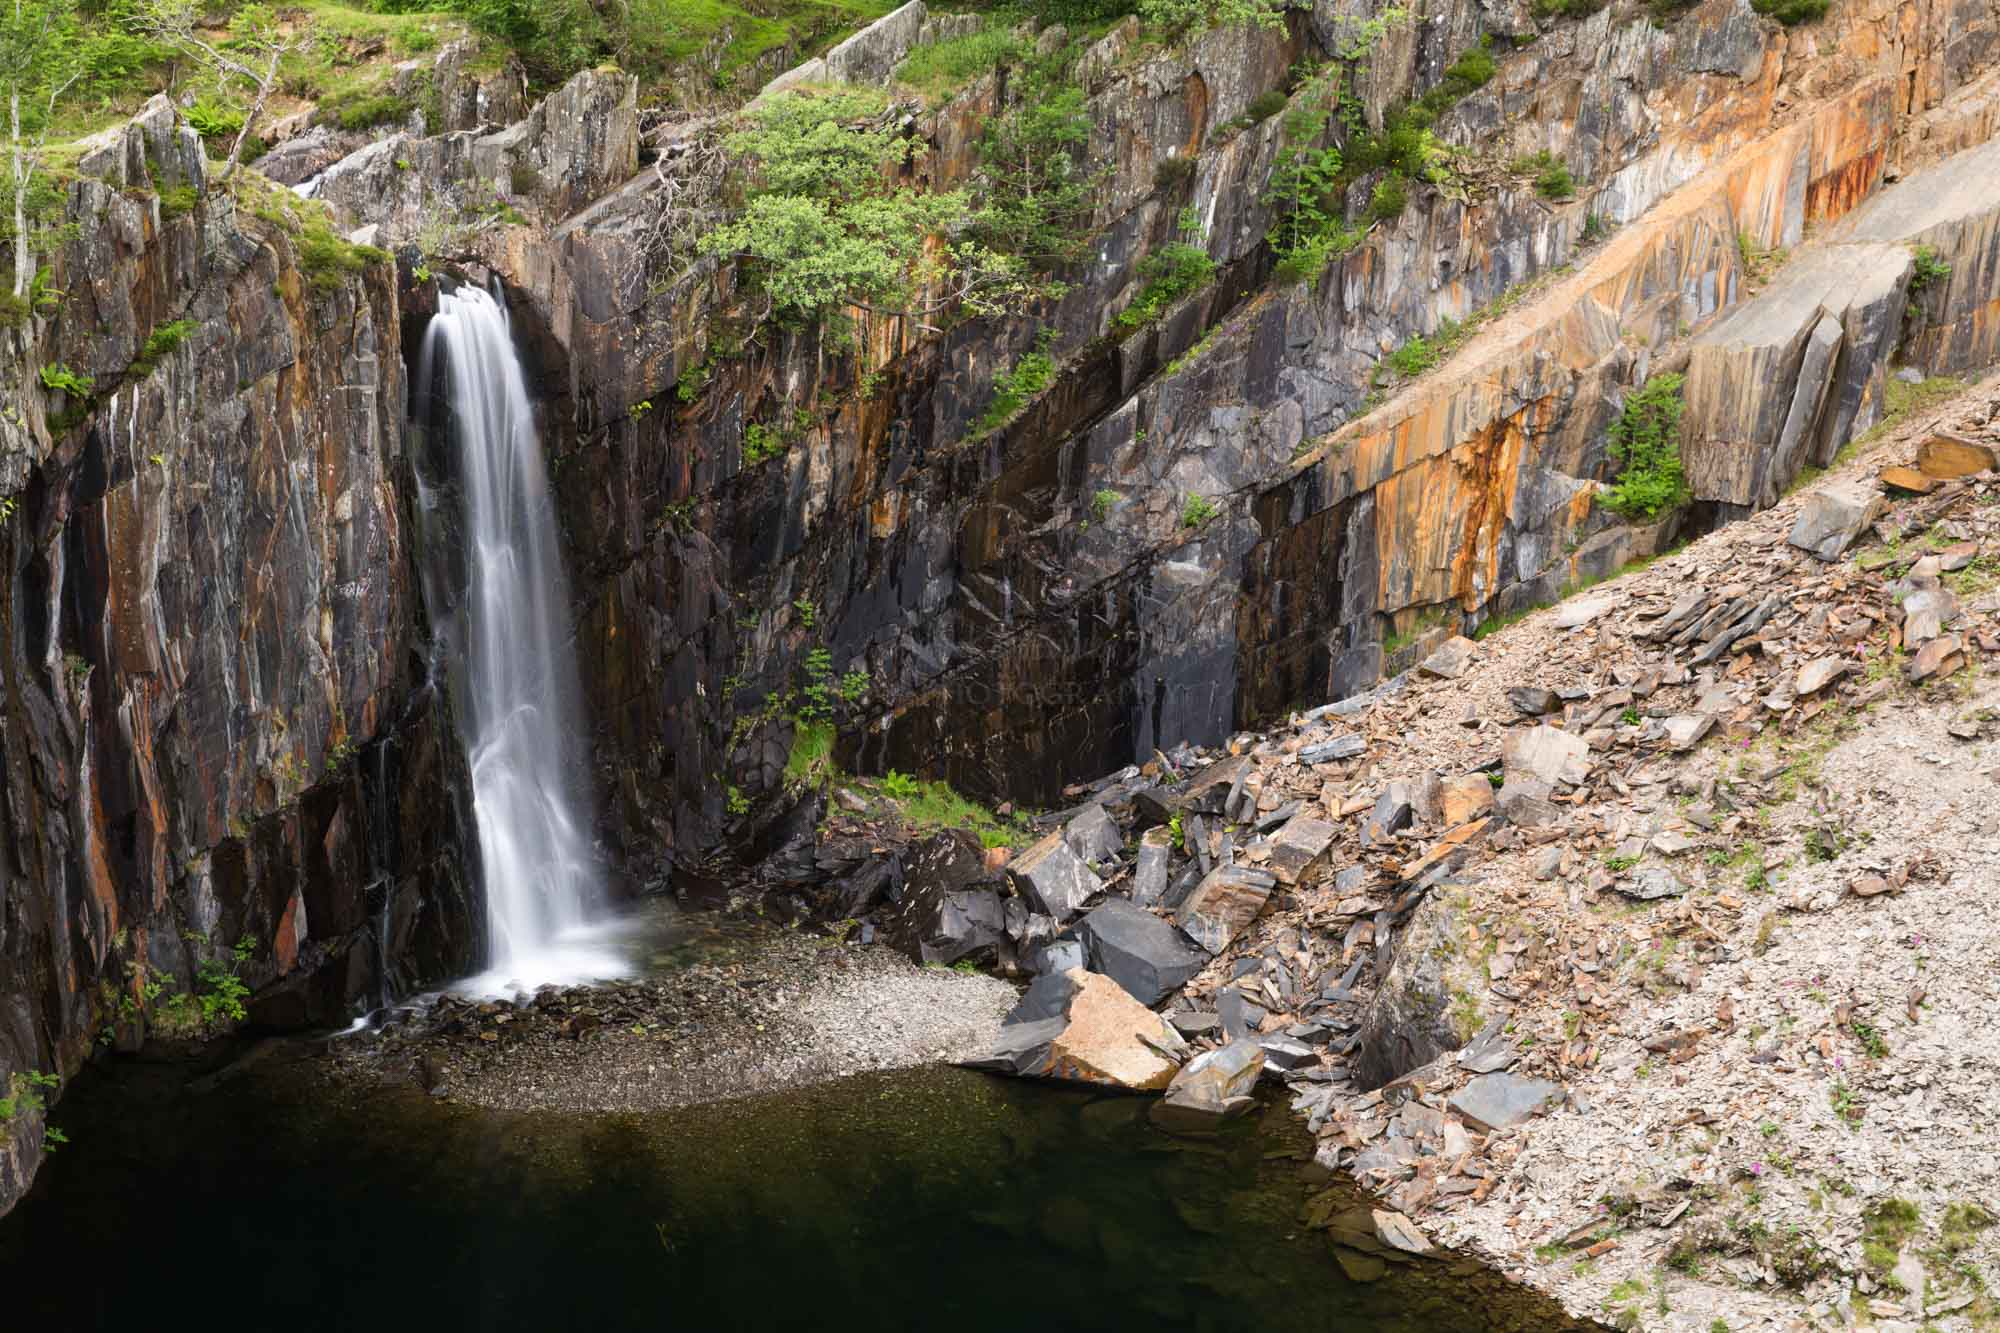 Waterfalls In Banishead Quarry. The Lake District 1